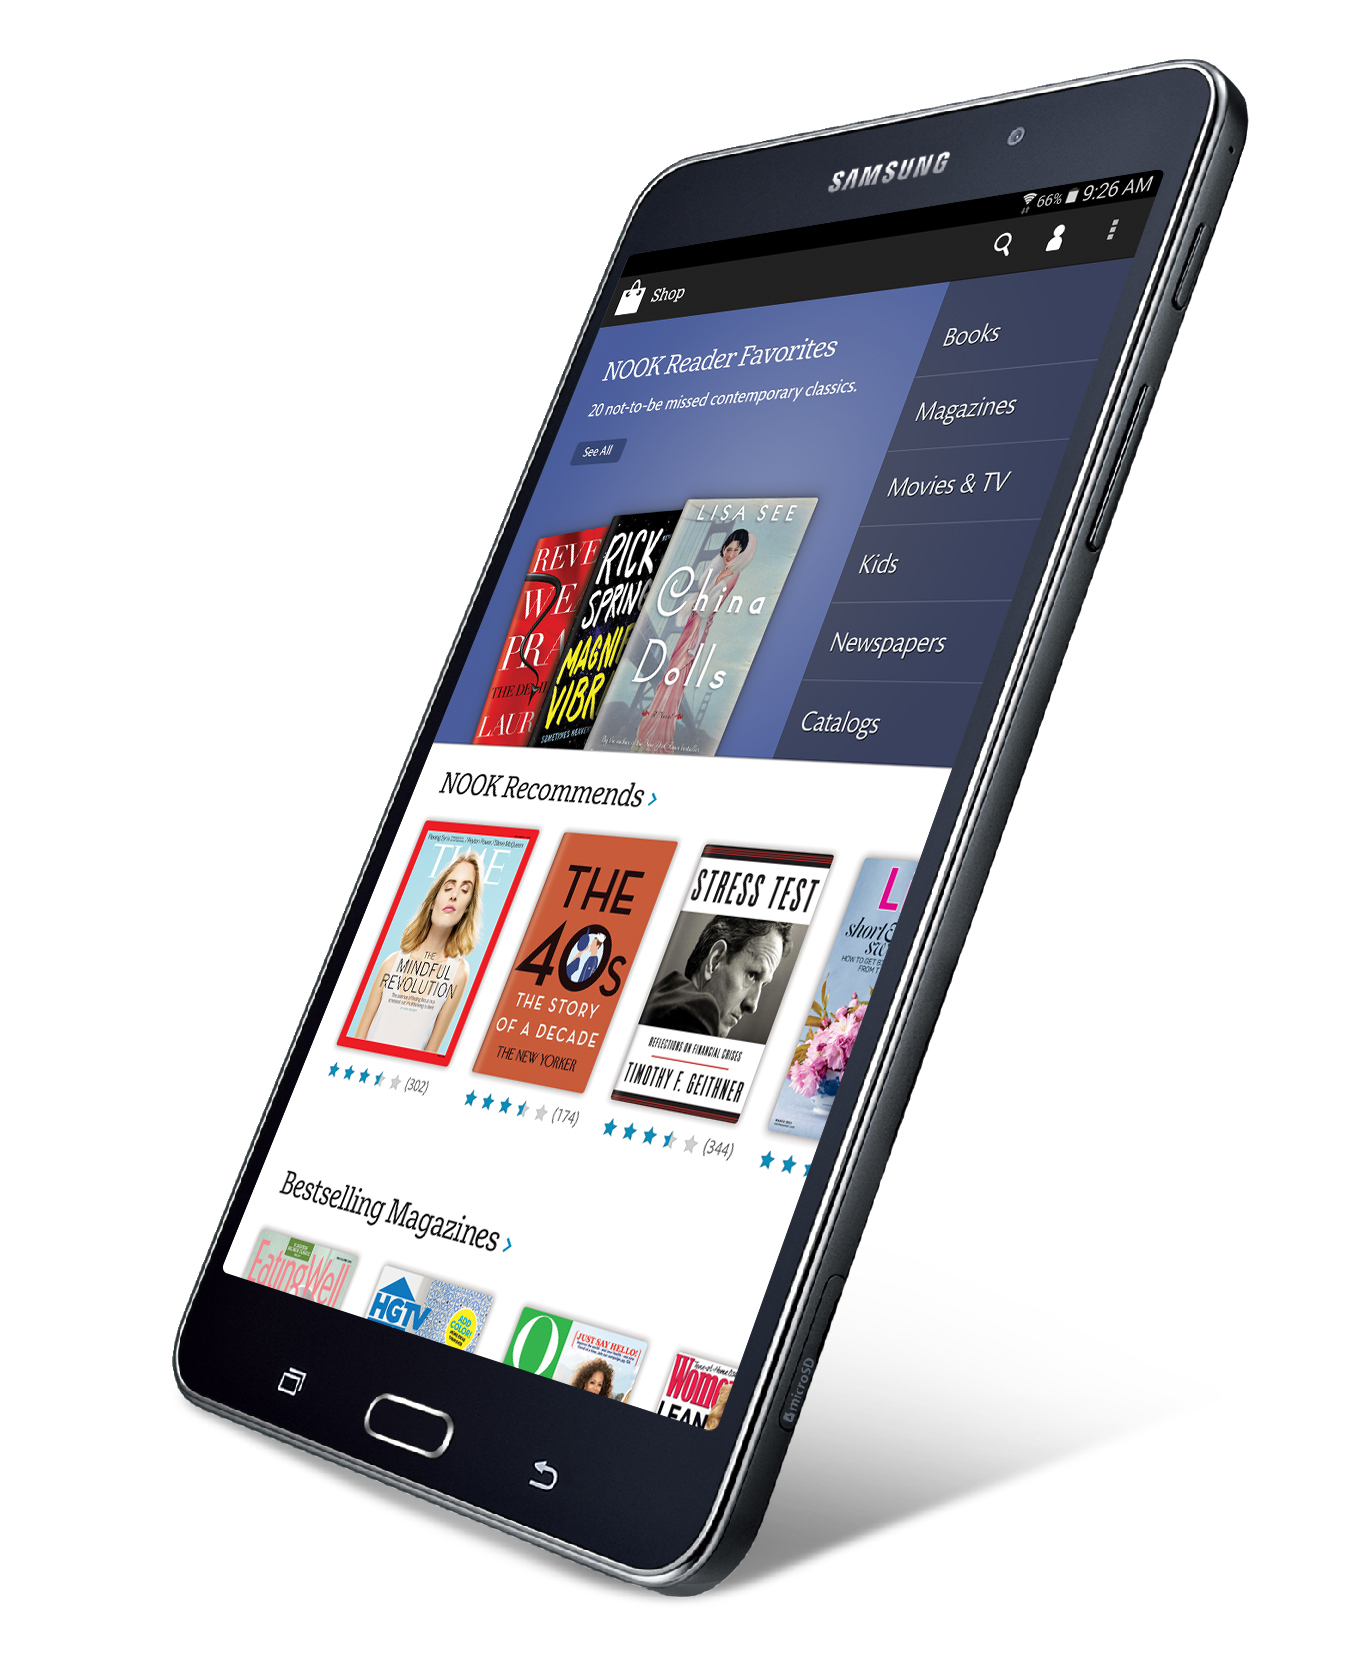 Samsung And Barnes Noble Announce Partnership To Create Co Branded Galaxy Tab 3v Tablets Business Wire